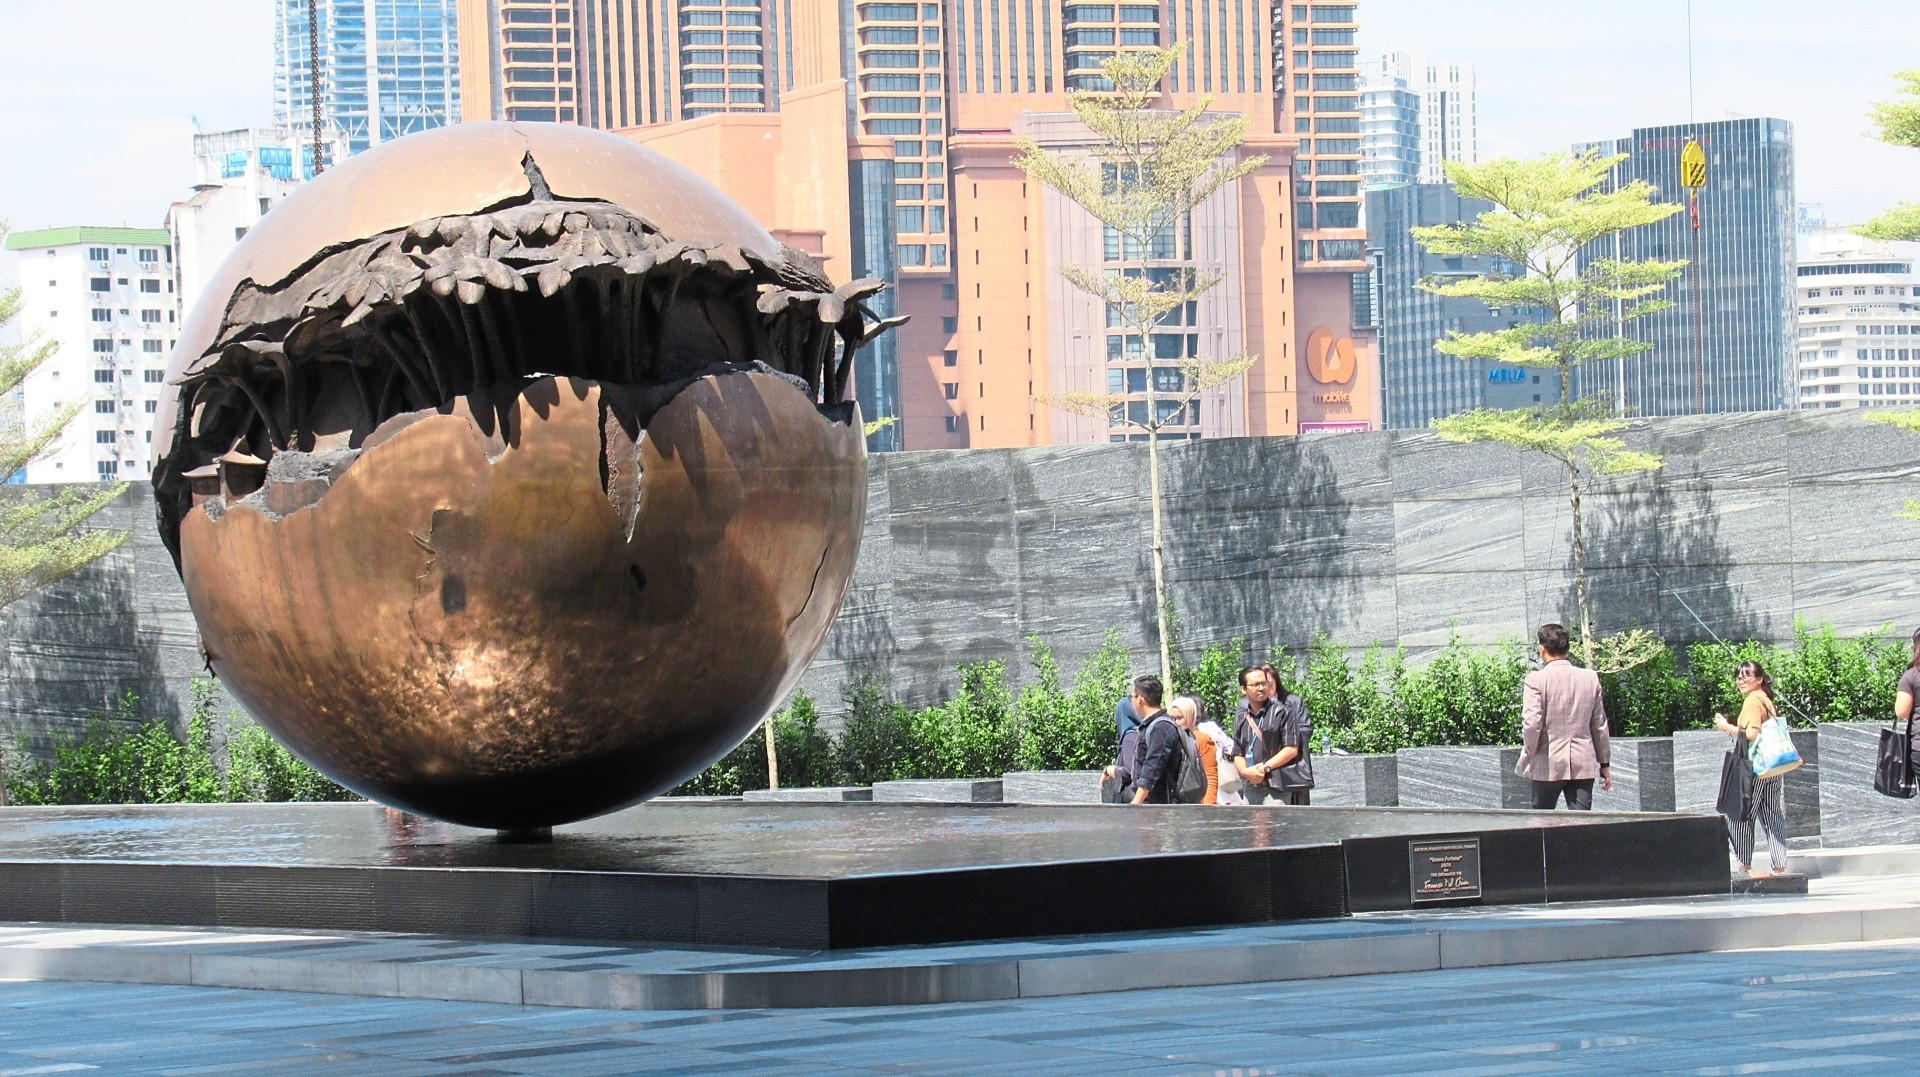 The Sphere to signify the global reach and standard  of  Exchange 106